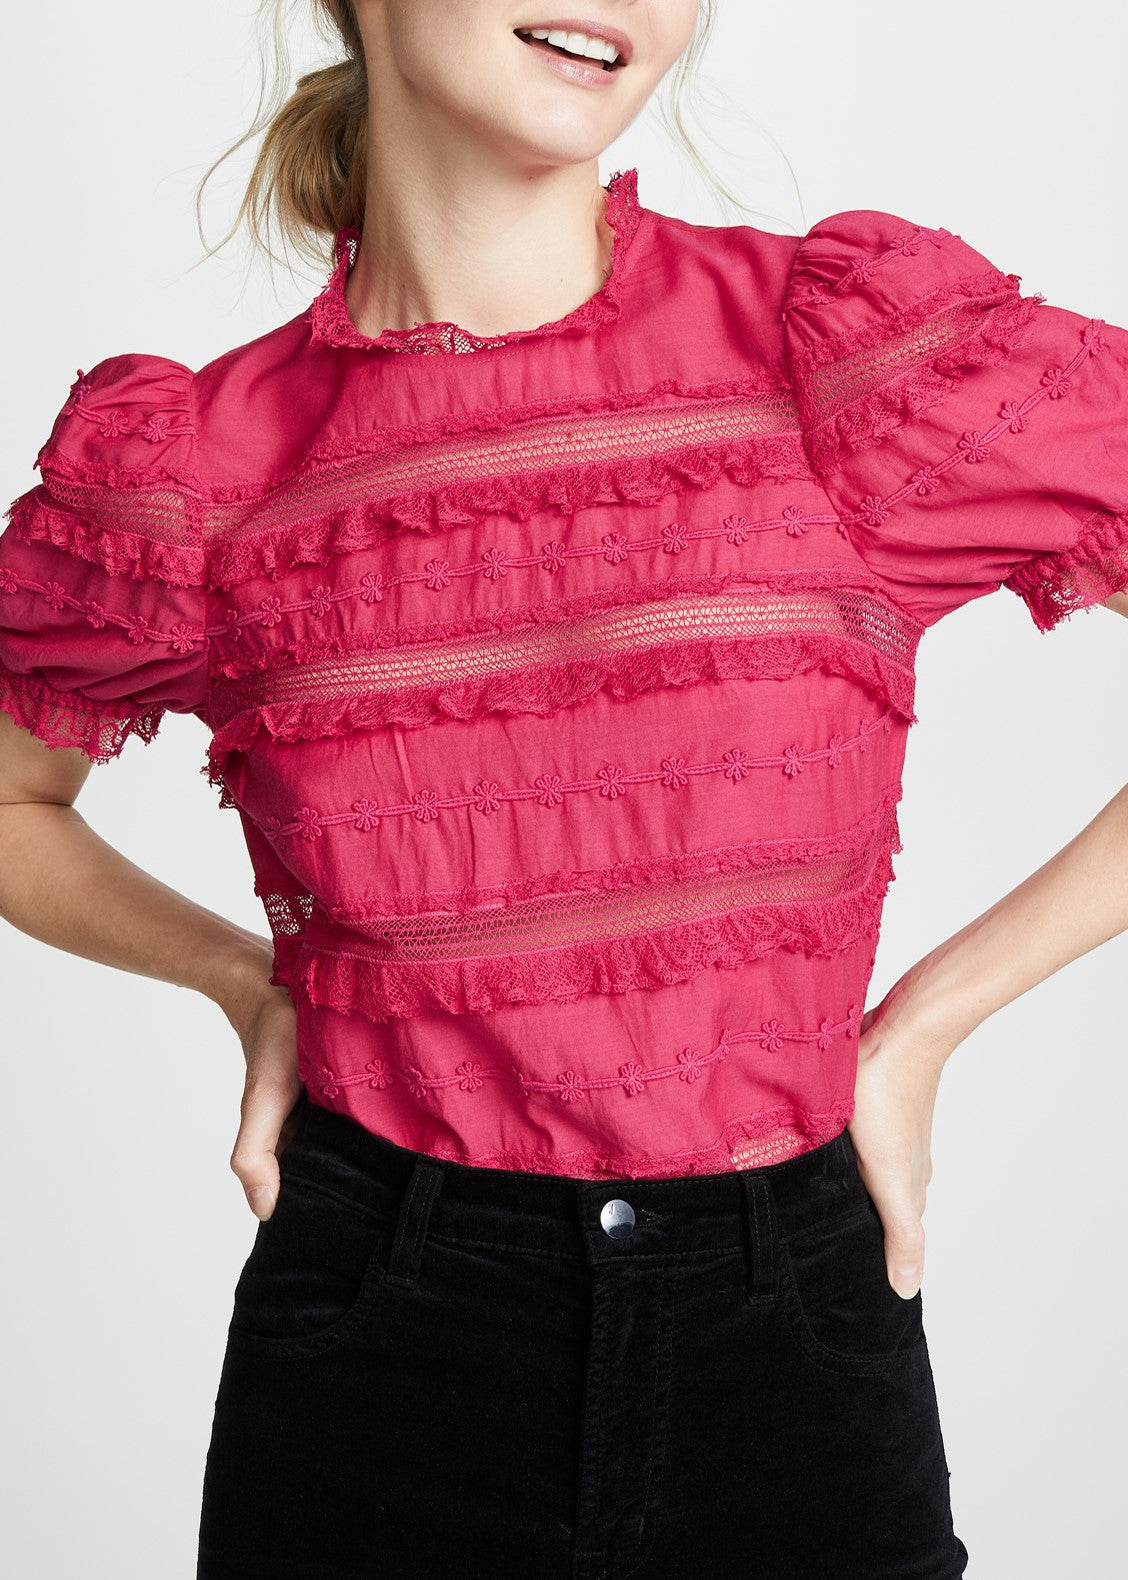 Ulla Johnson Desi top in fuschia